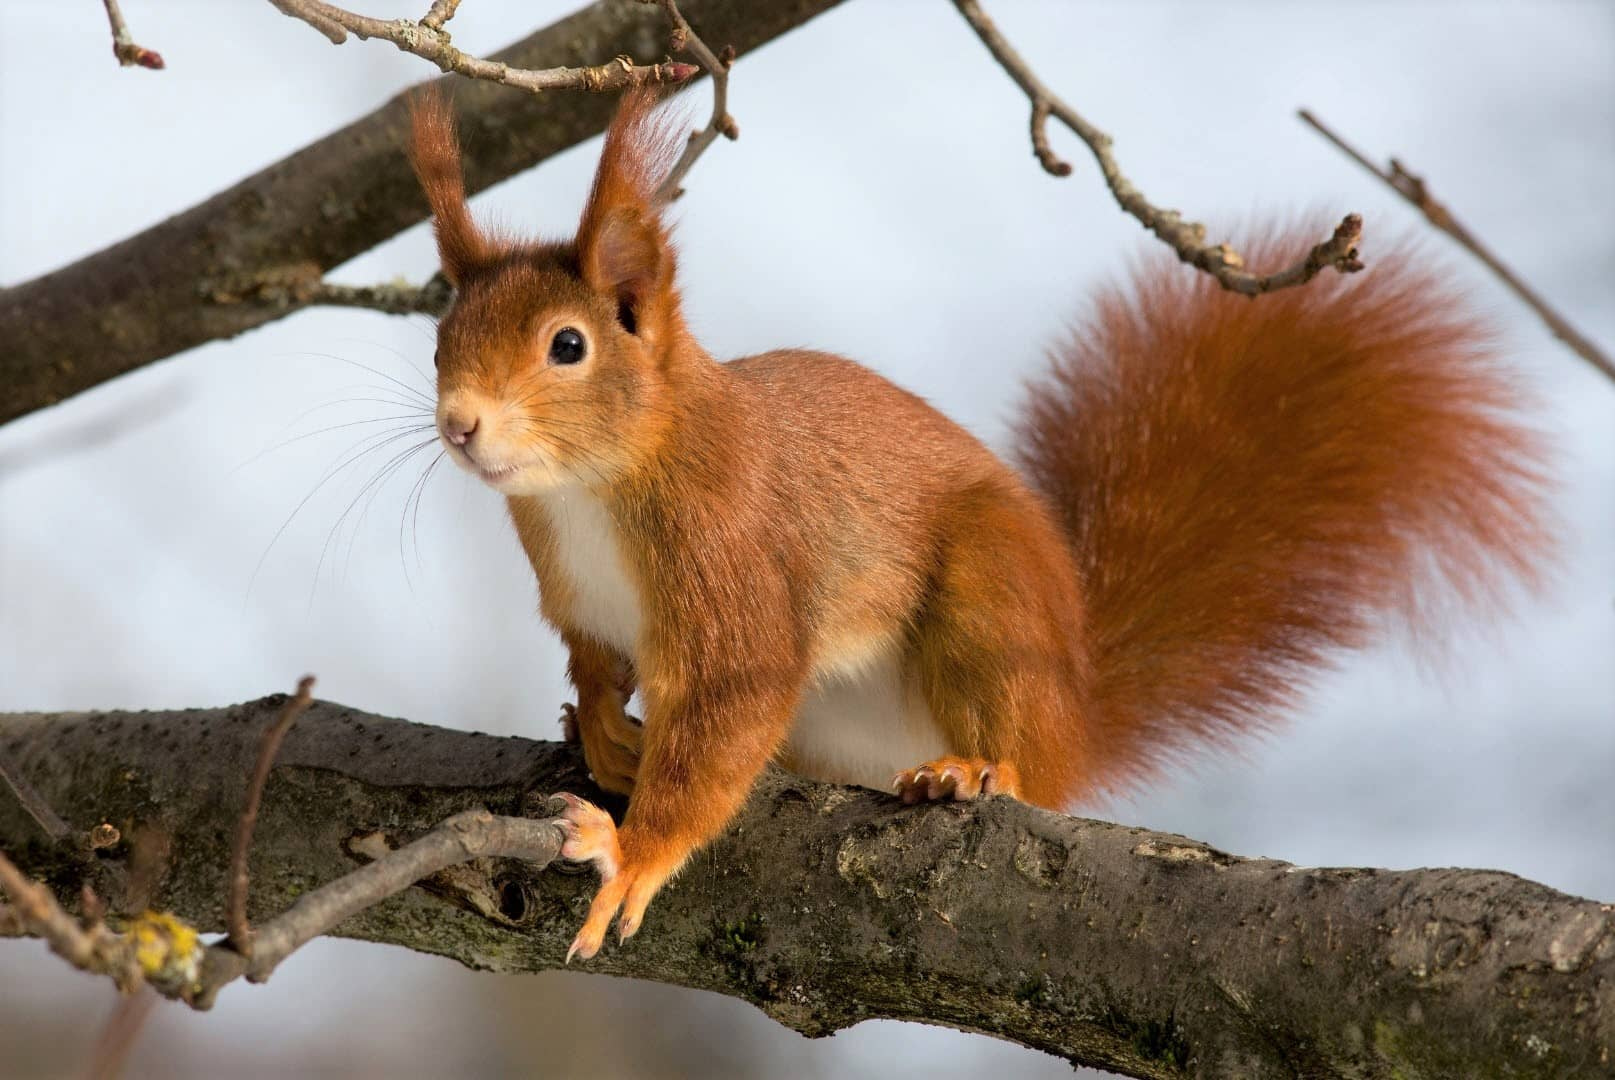 When, What & Why Does Squirrels Make Sounds [Crying, Mating...]